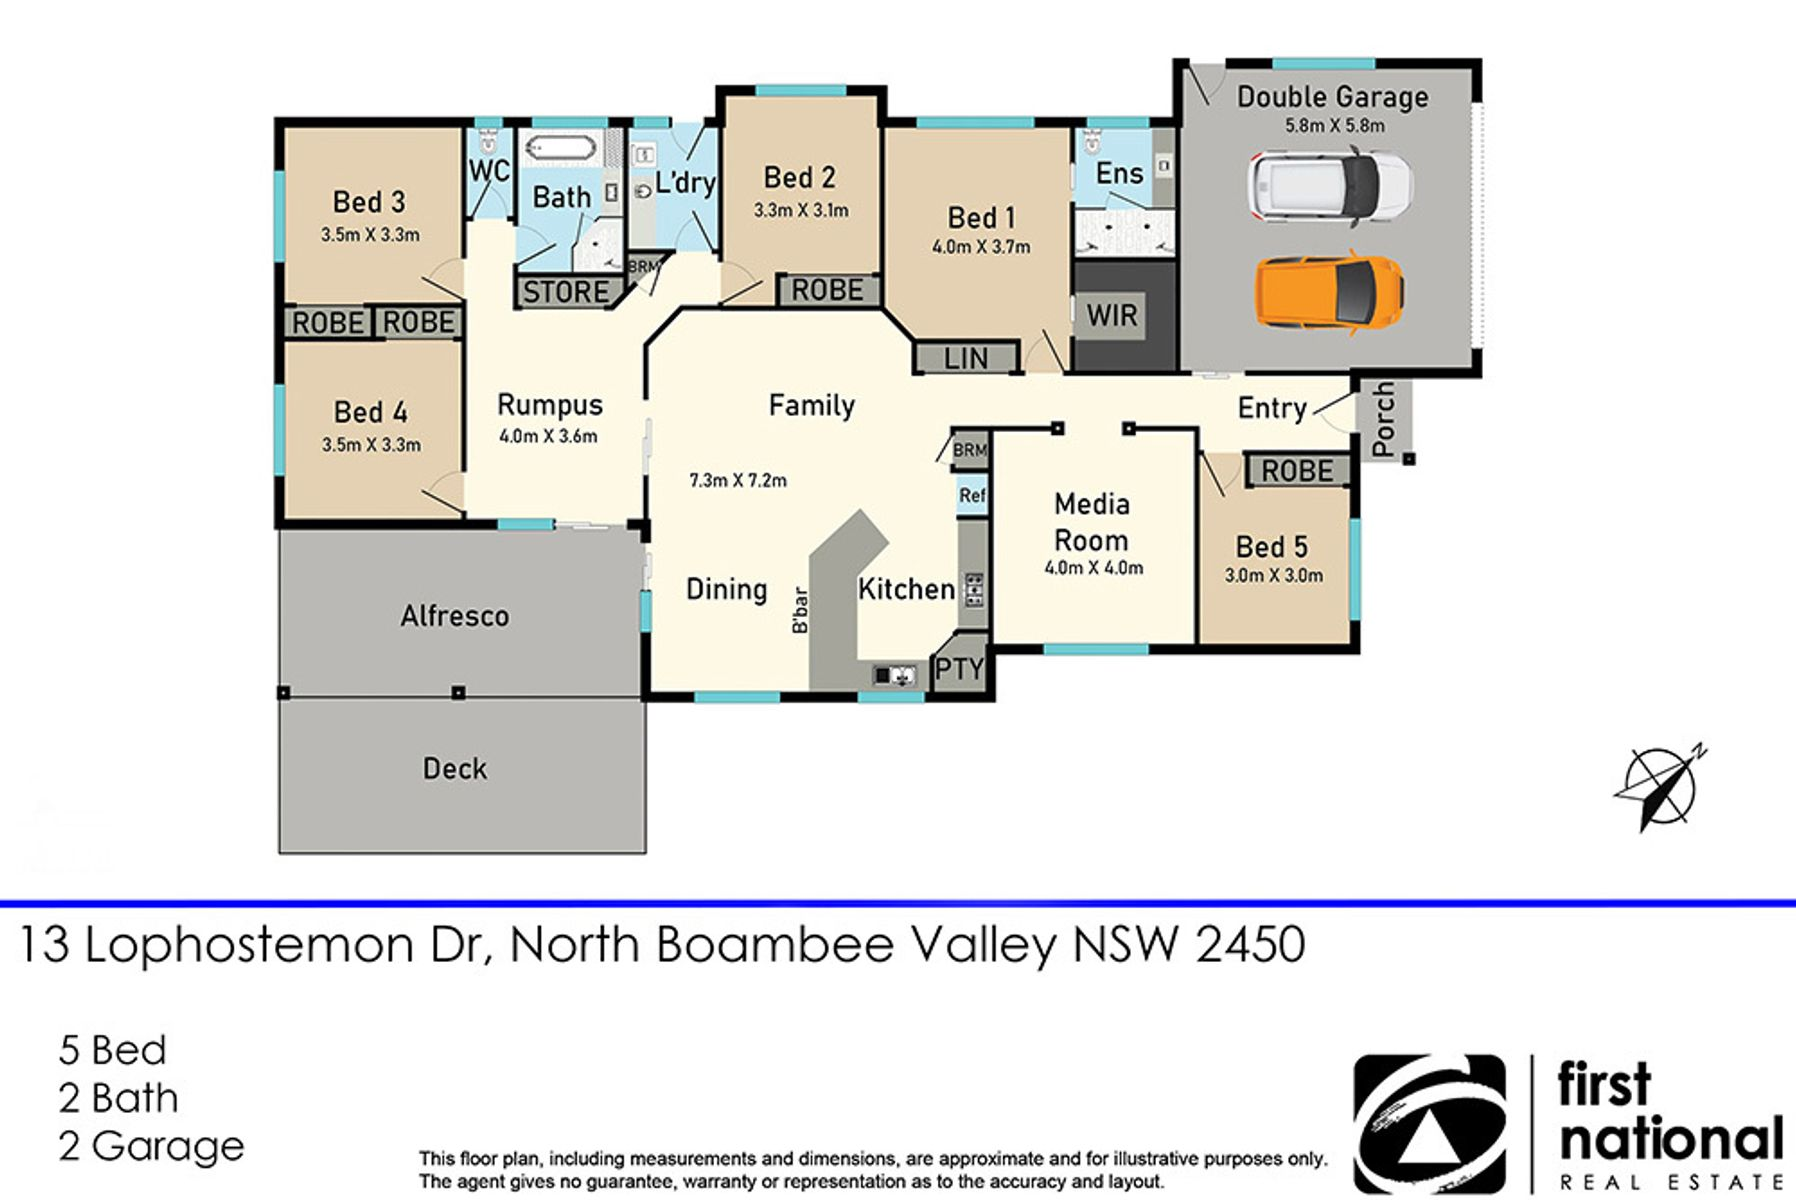 13 Lophostemon Drive, North Boambee Valley, NSW 2450